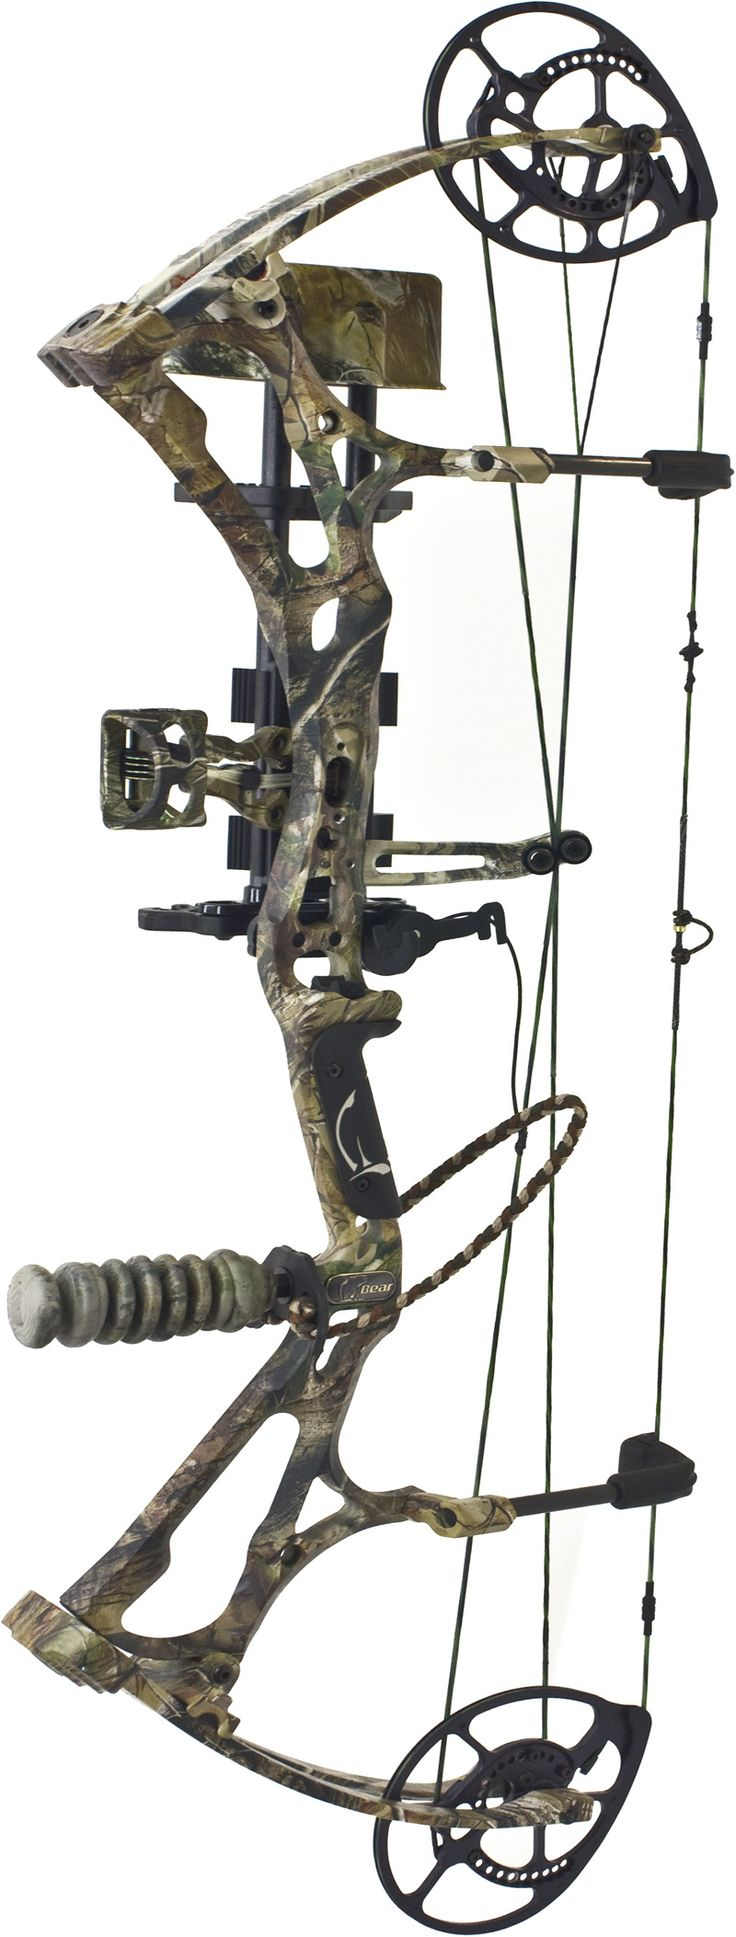 2013 Bear Motive 6, a TRUE 350 fps Killer! Complete Bowhunting Package Deal.